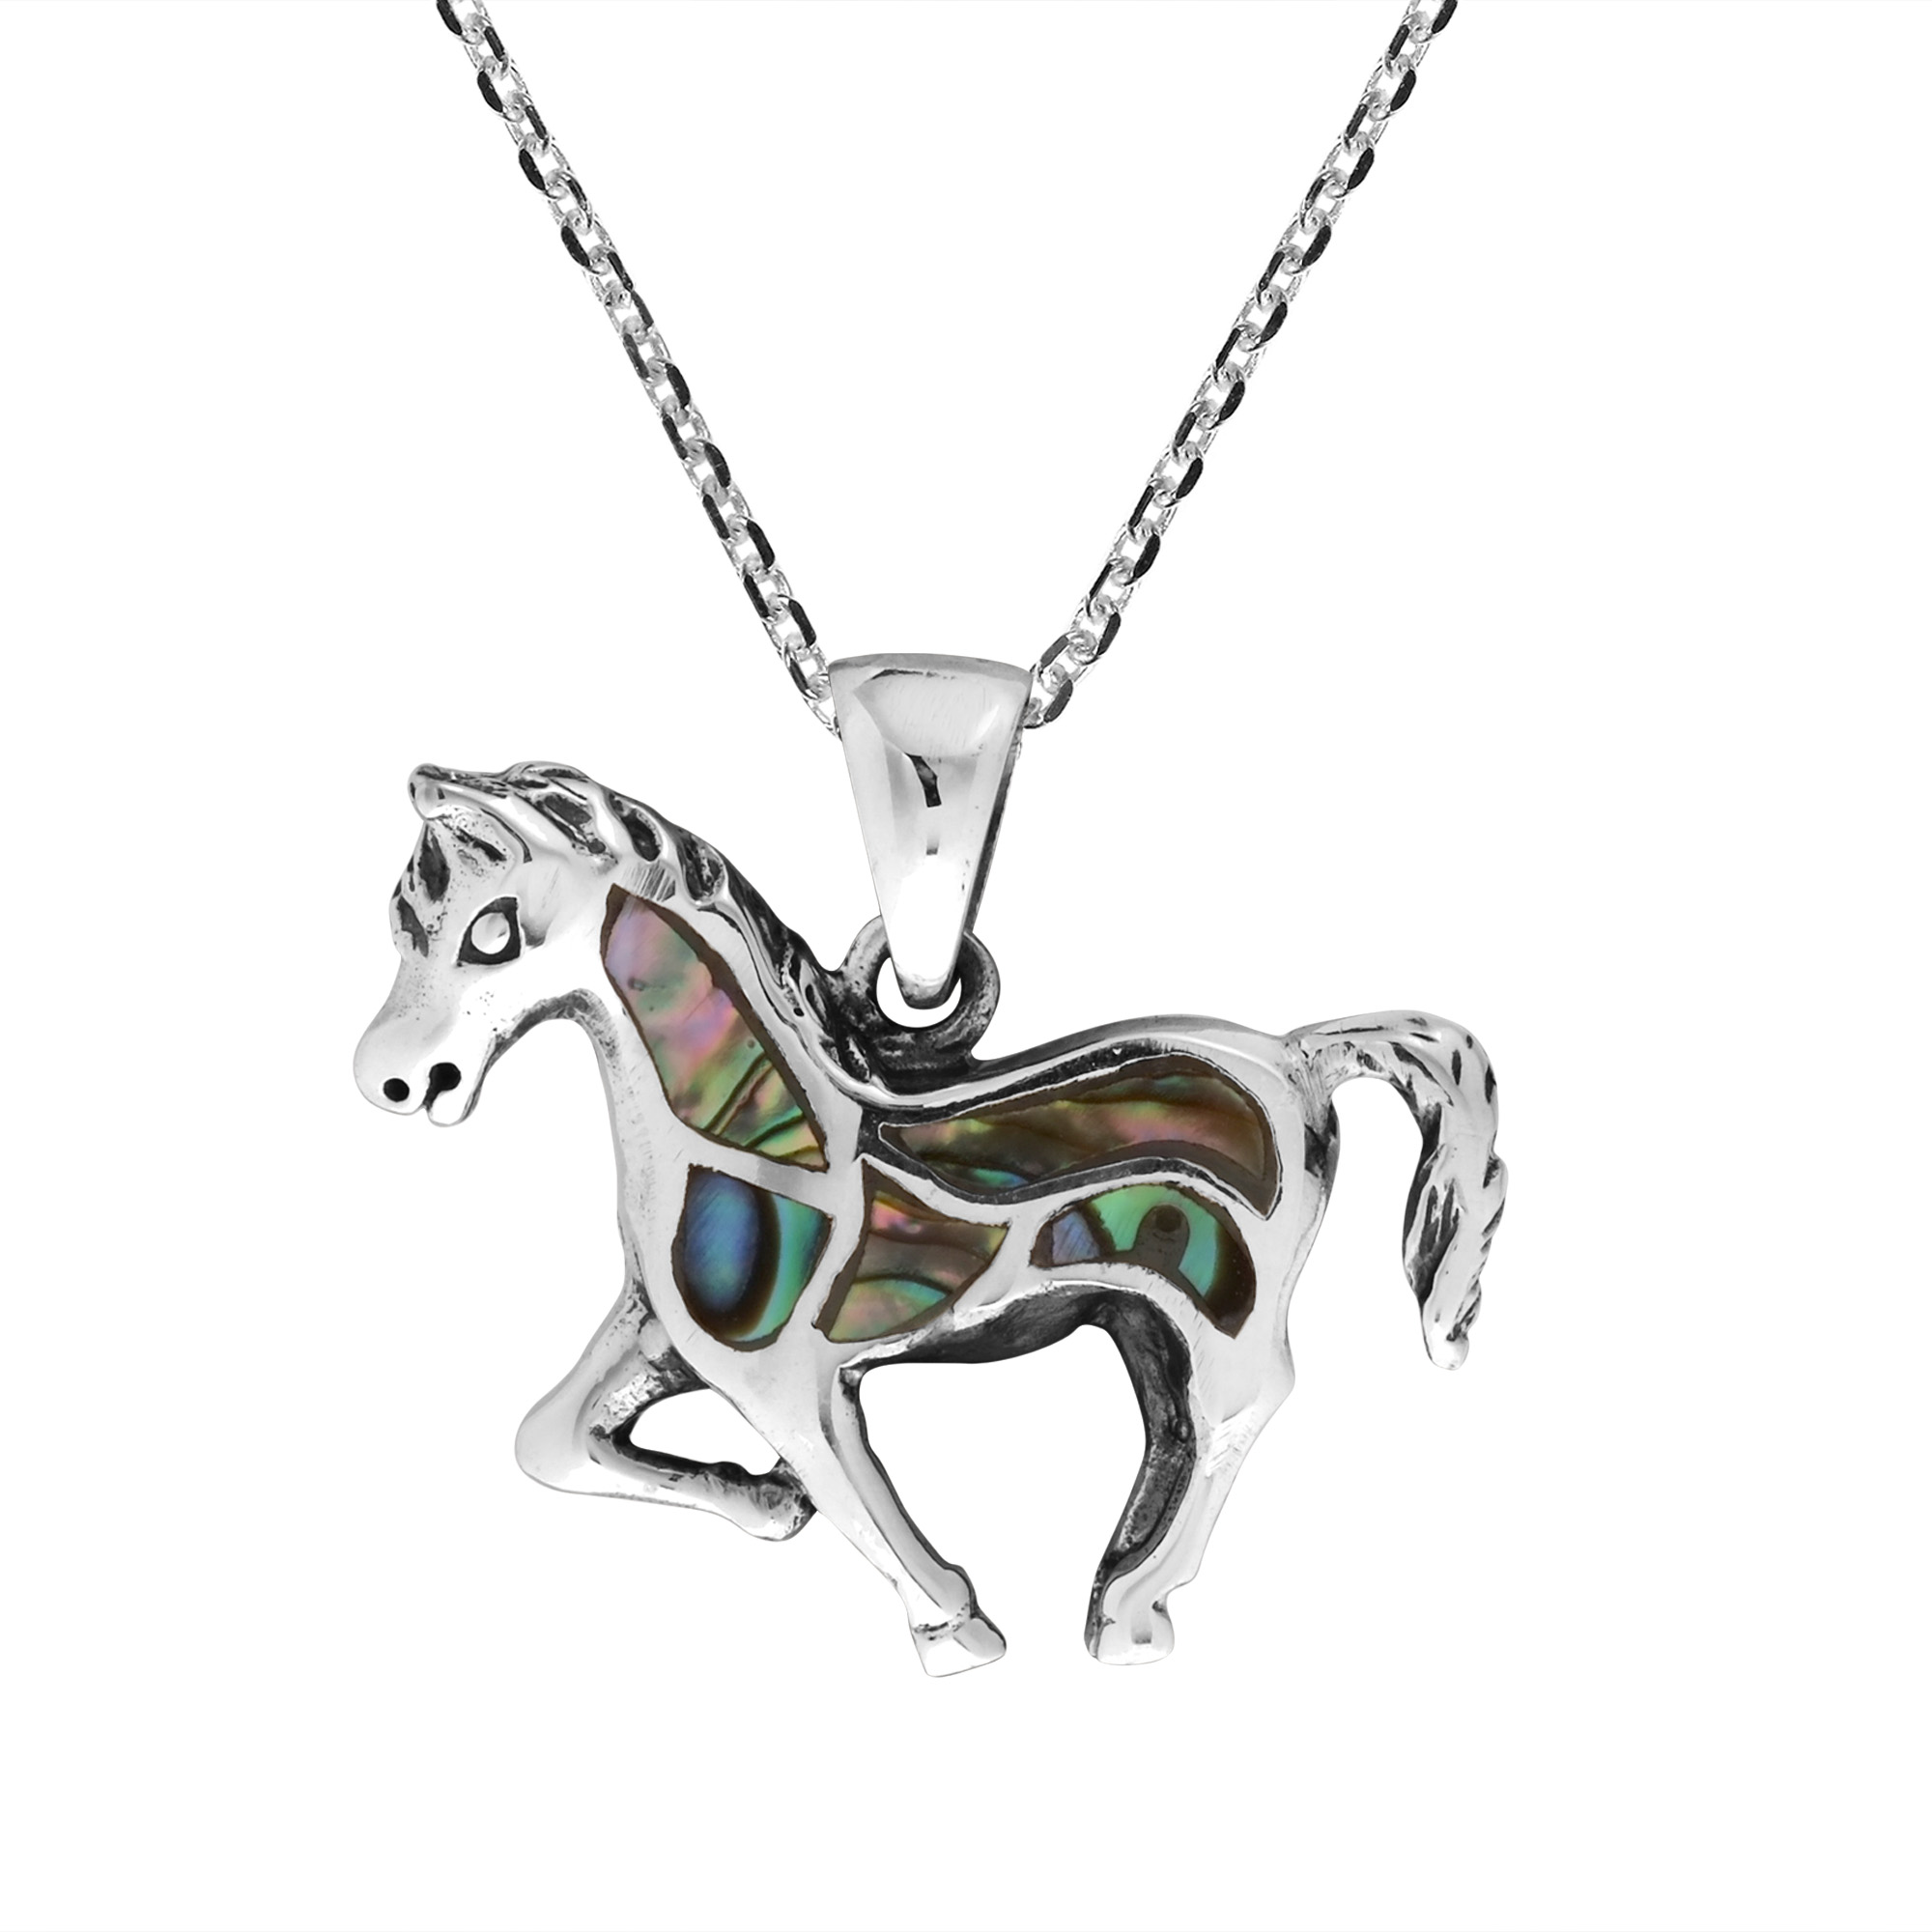 Free Spirit Horse Abalone Shell Inlay .925 Sterling Silver Pendant Necklace